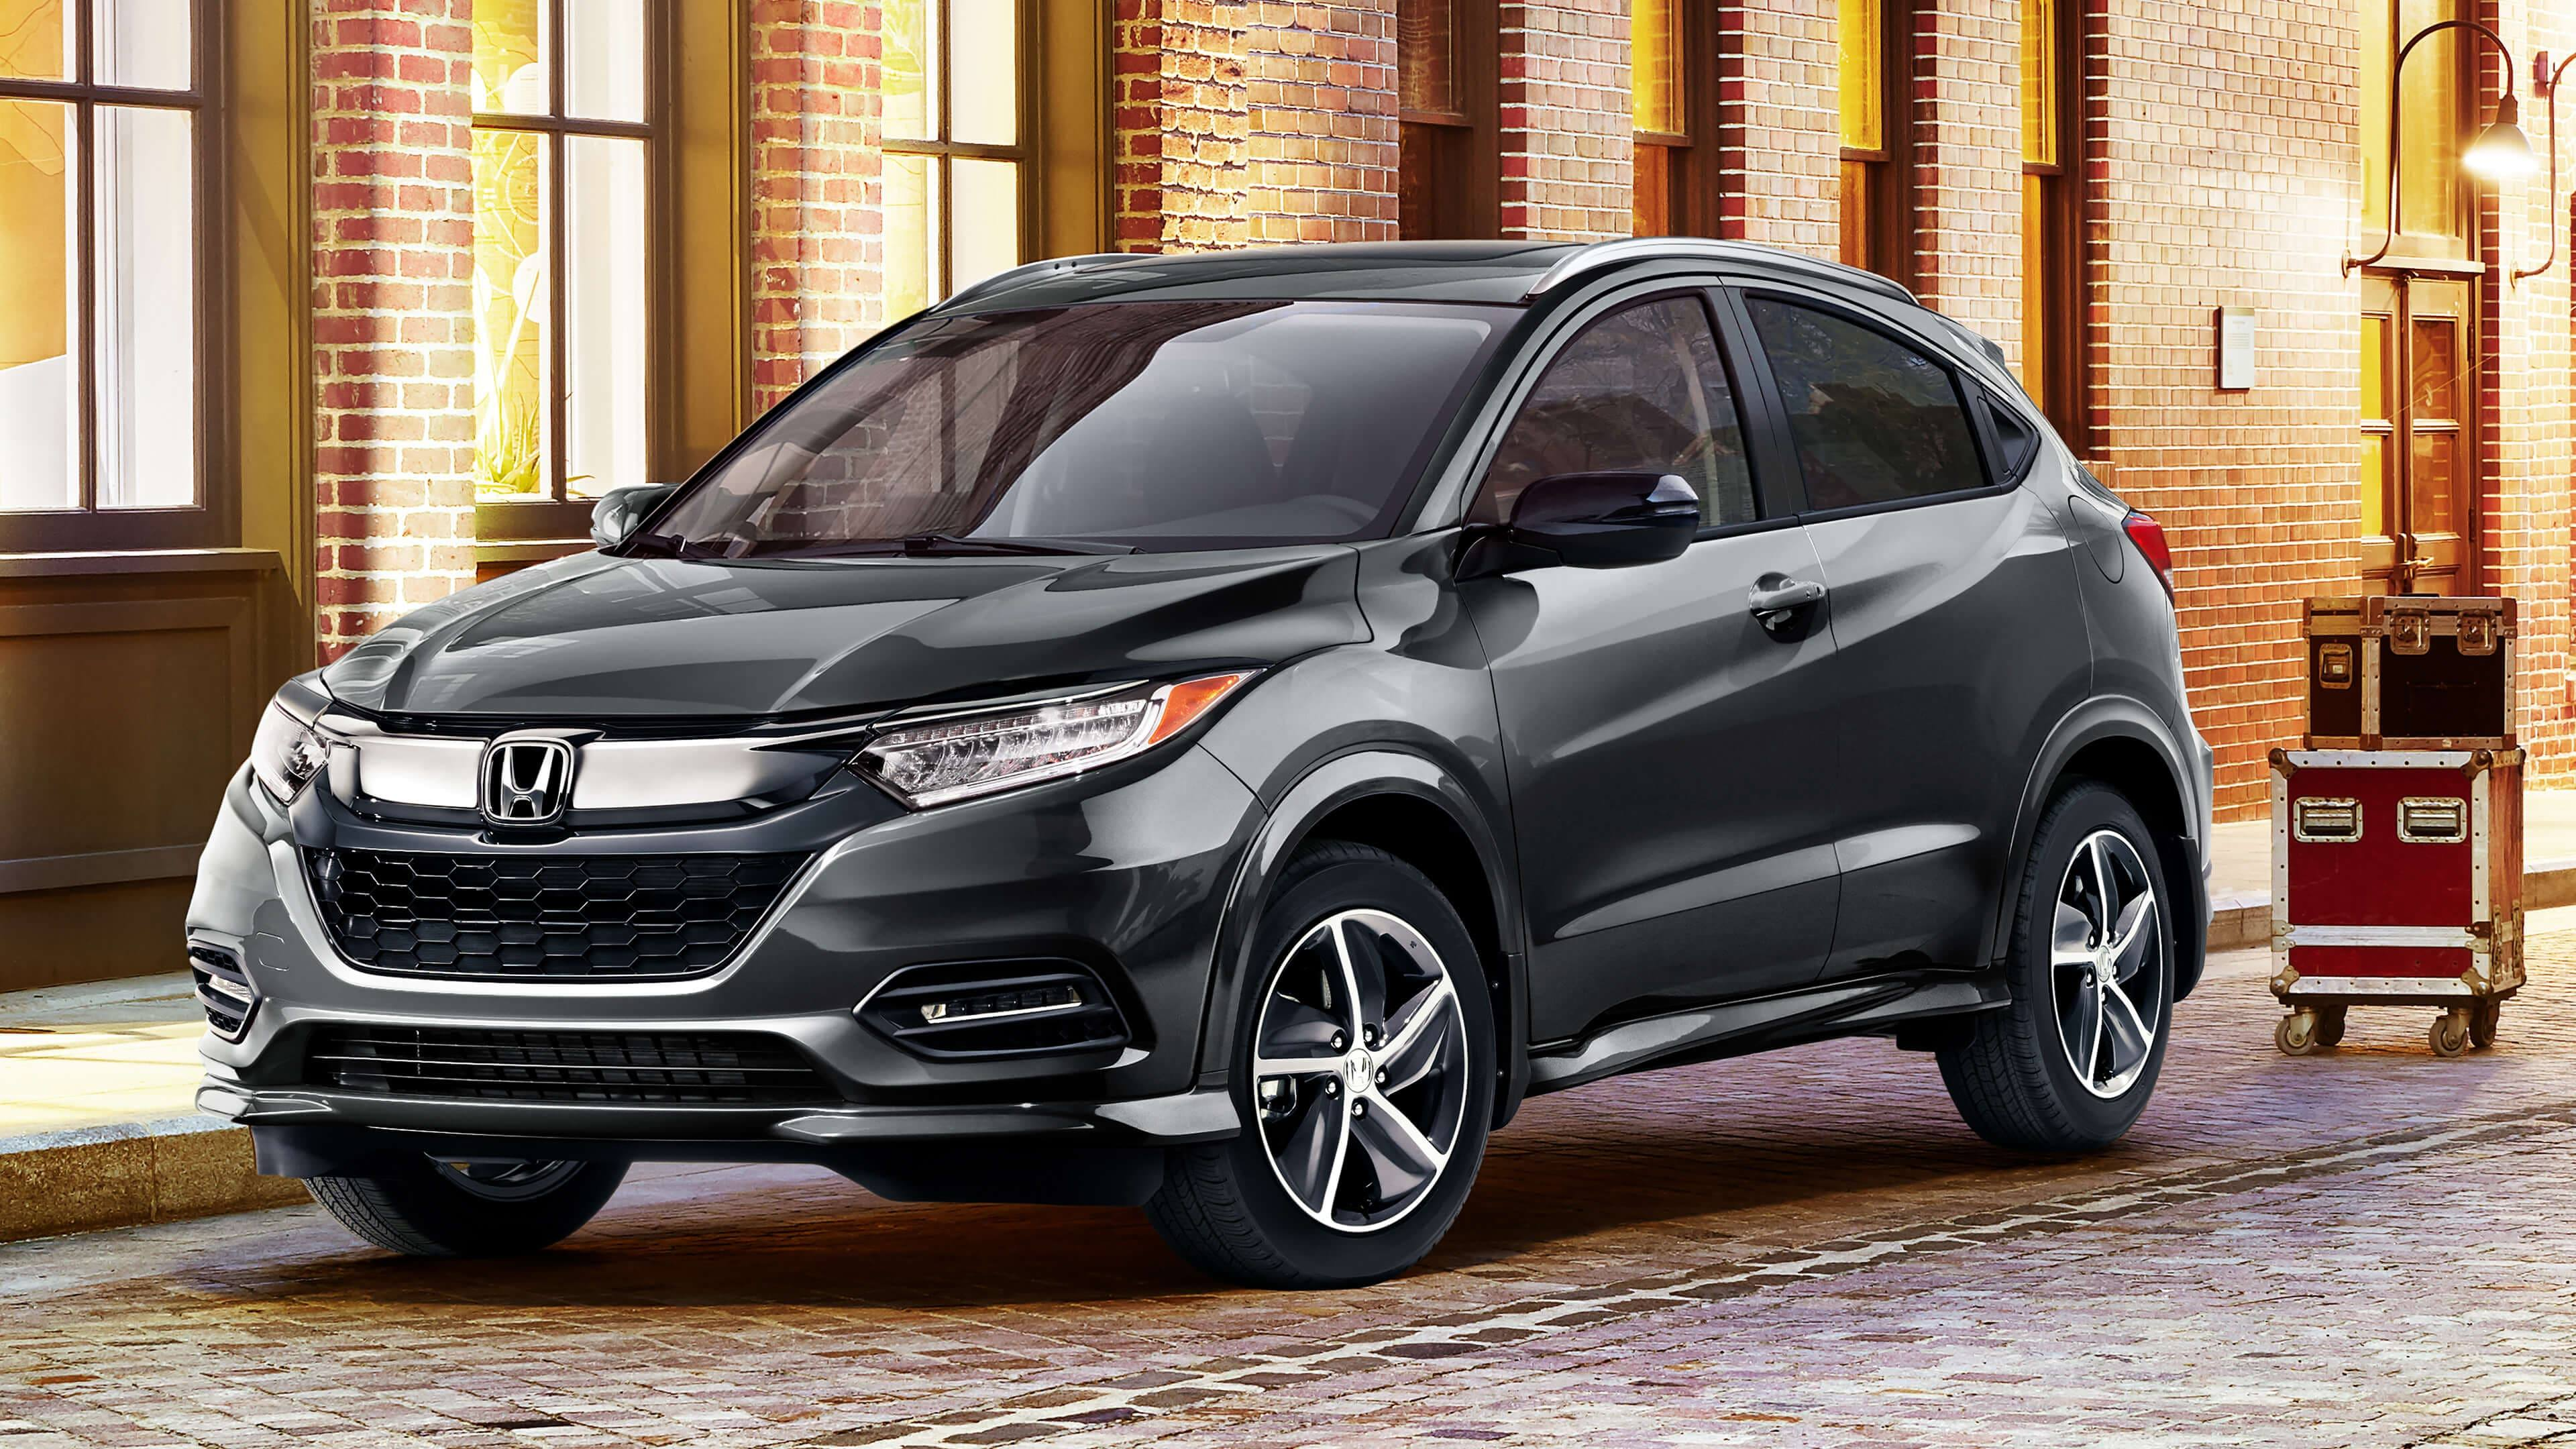 Diagonal front view of 2020 Honda HR-V parked in front of a brick building